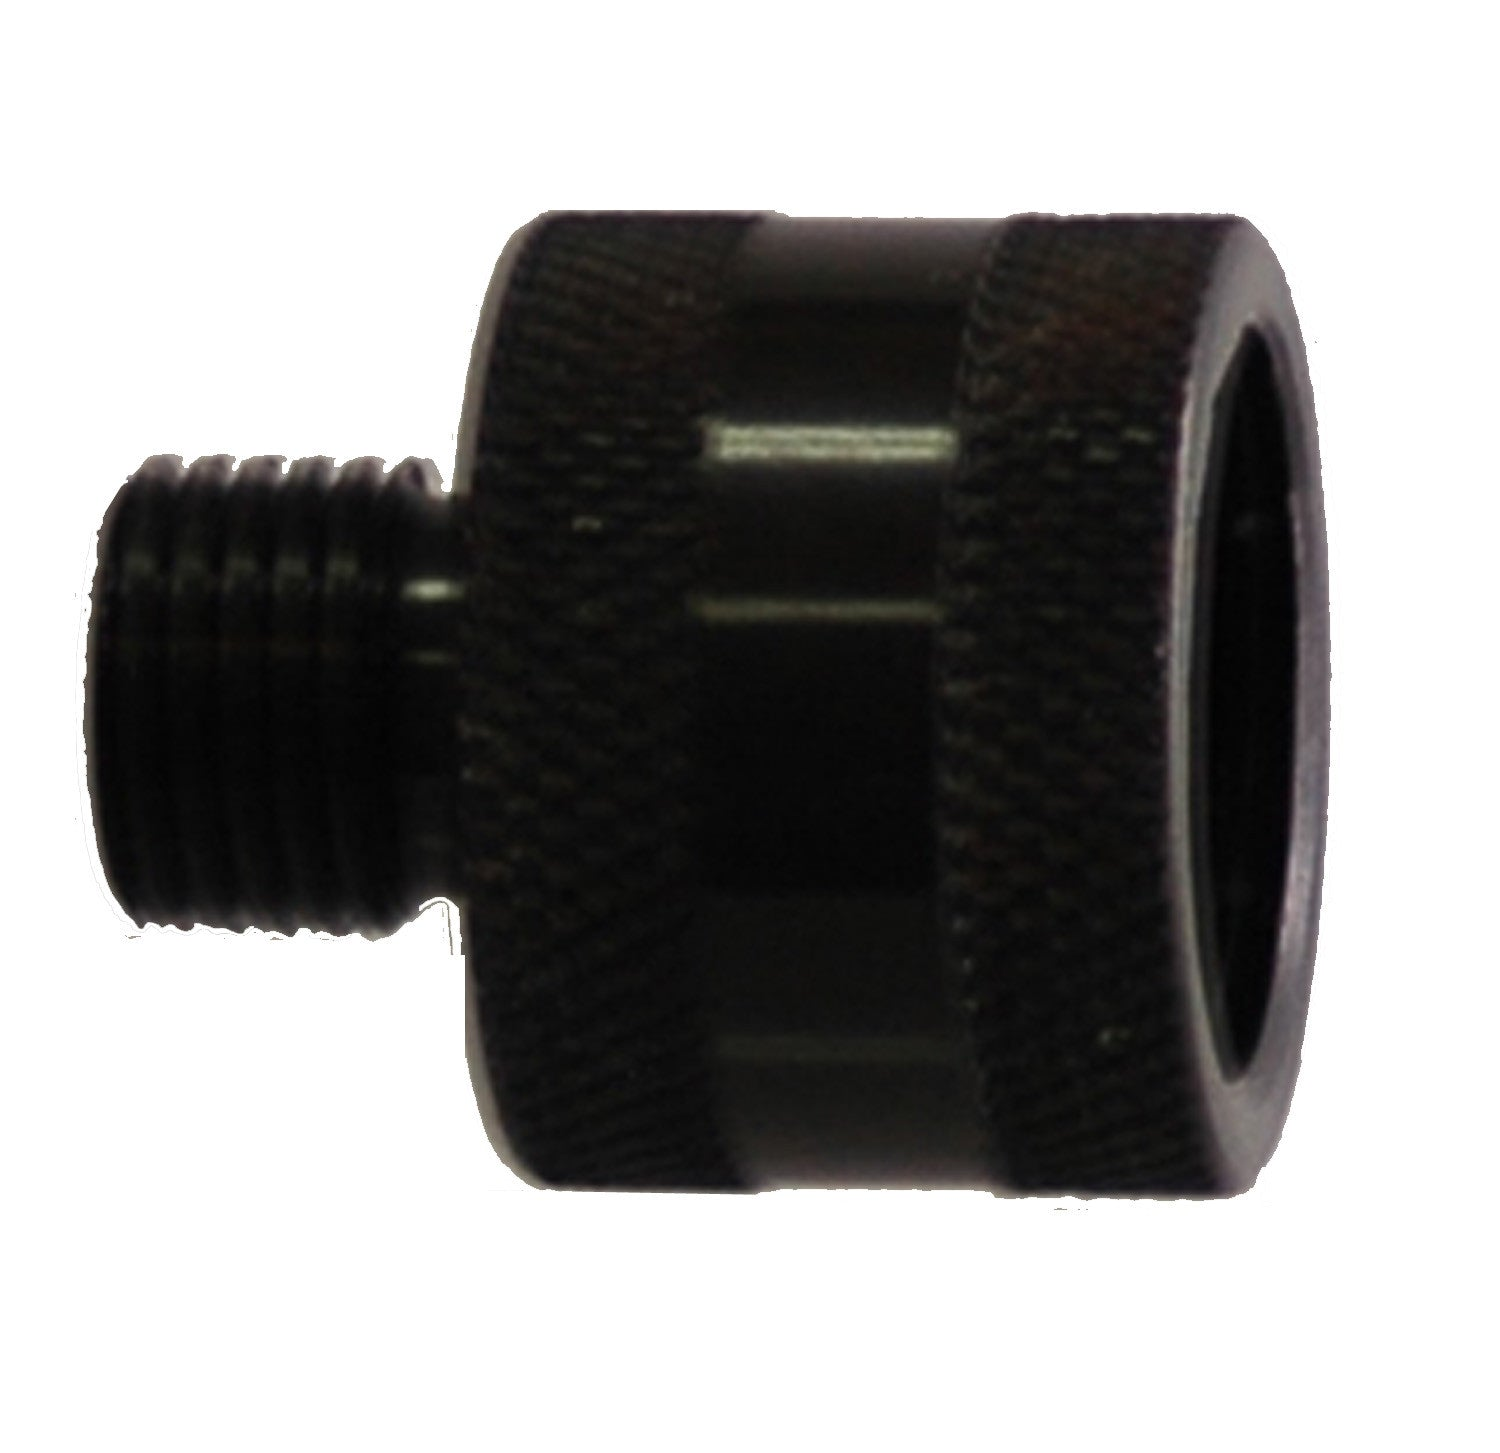 """.825x14 Female Threads to 6mm male Threads Air Supply Adapter """"ASA"""""""